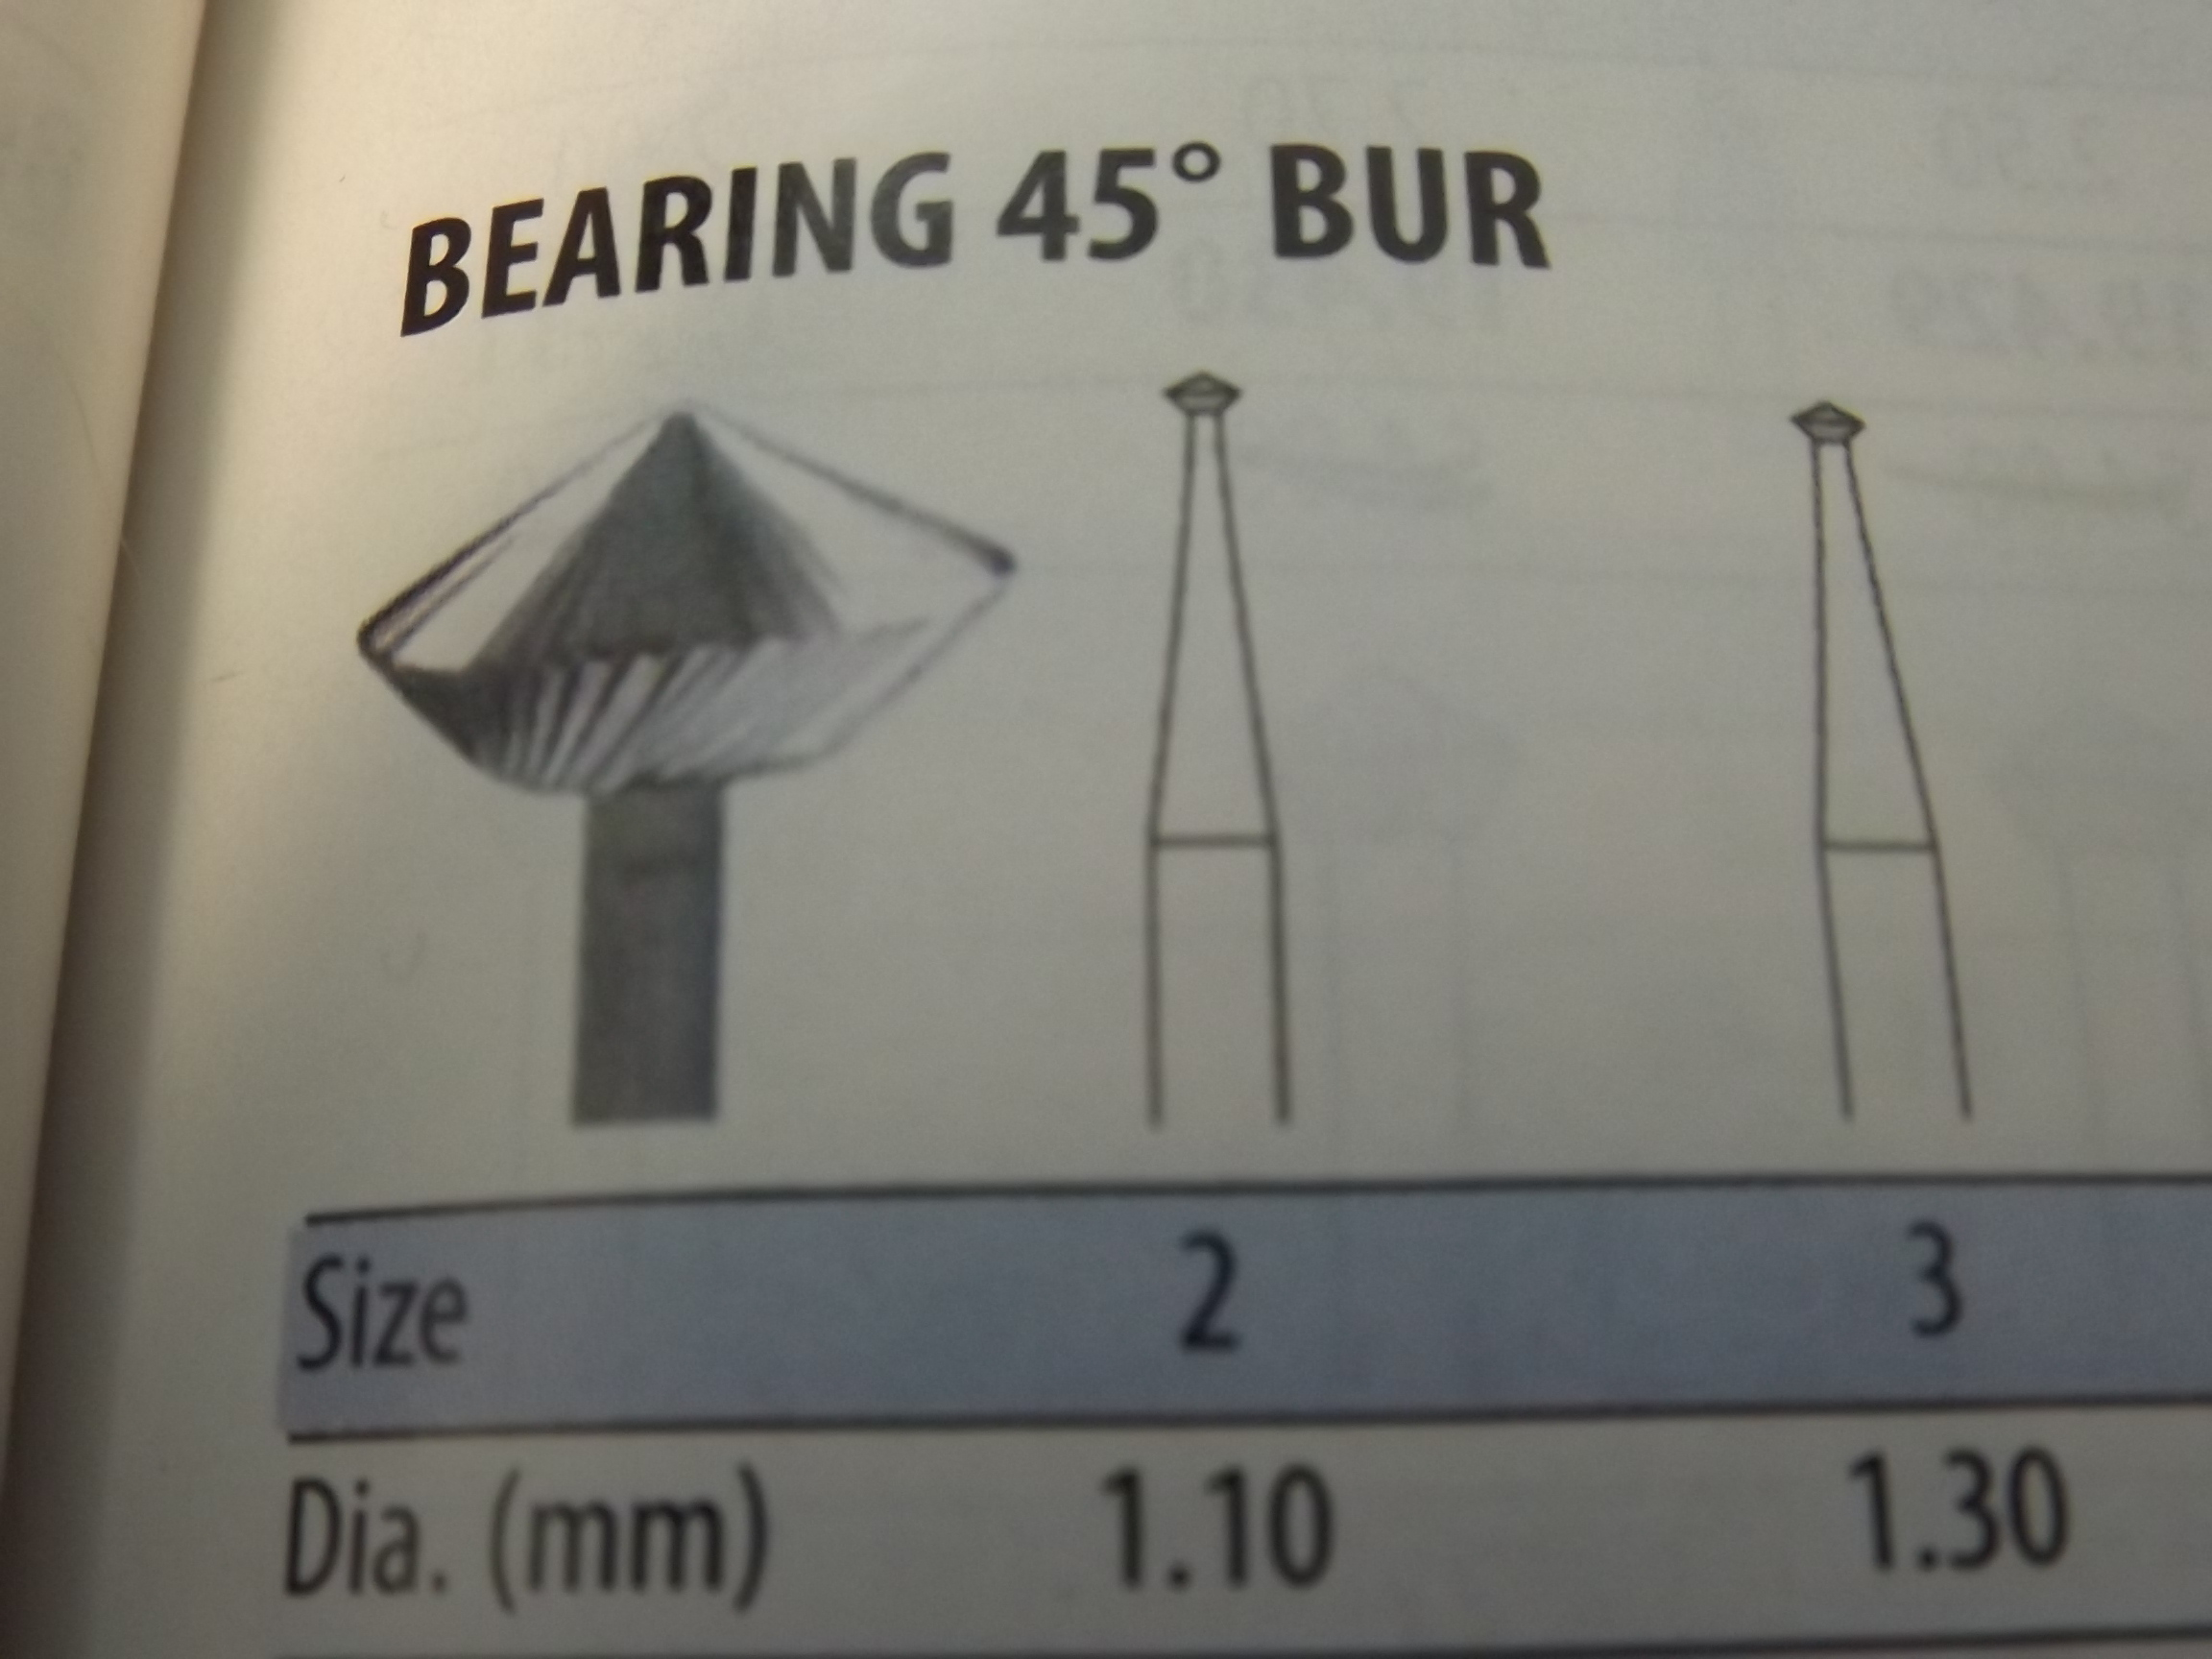 BR763/7 Hi Speed Steel 45* Bearing Burs #7--Grobet #19.387